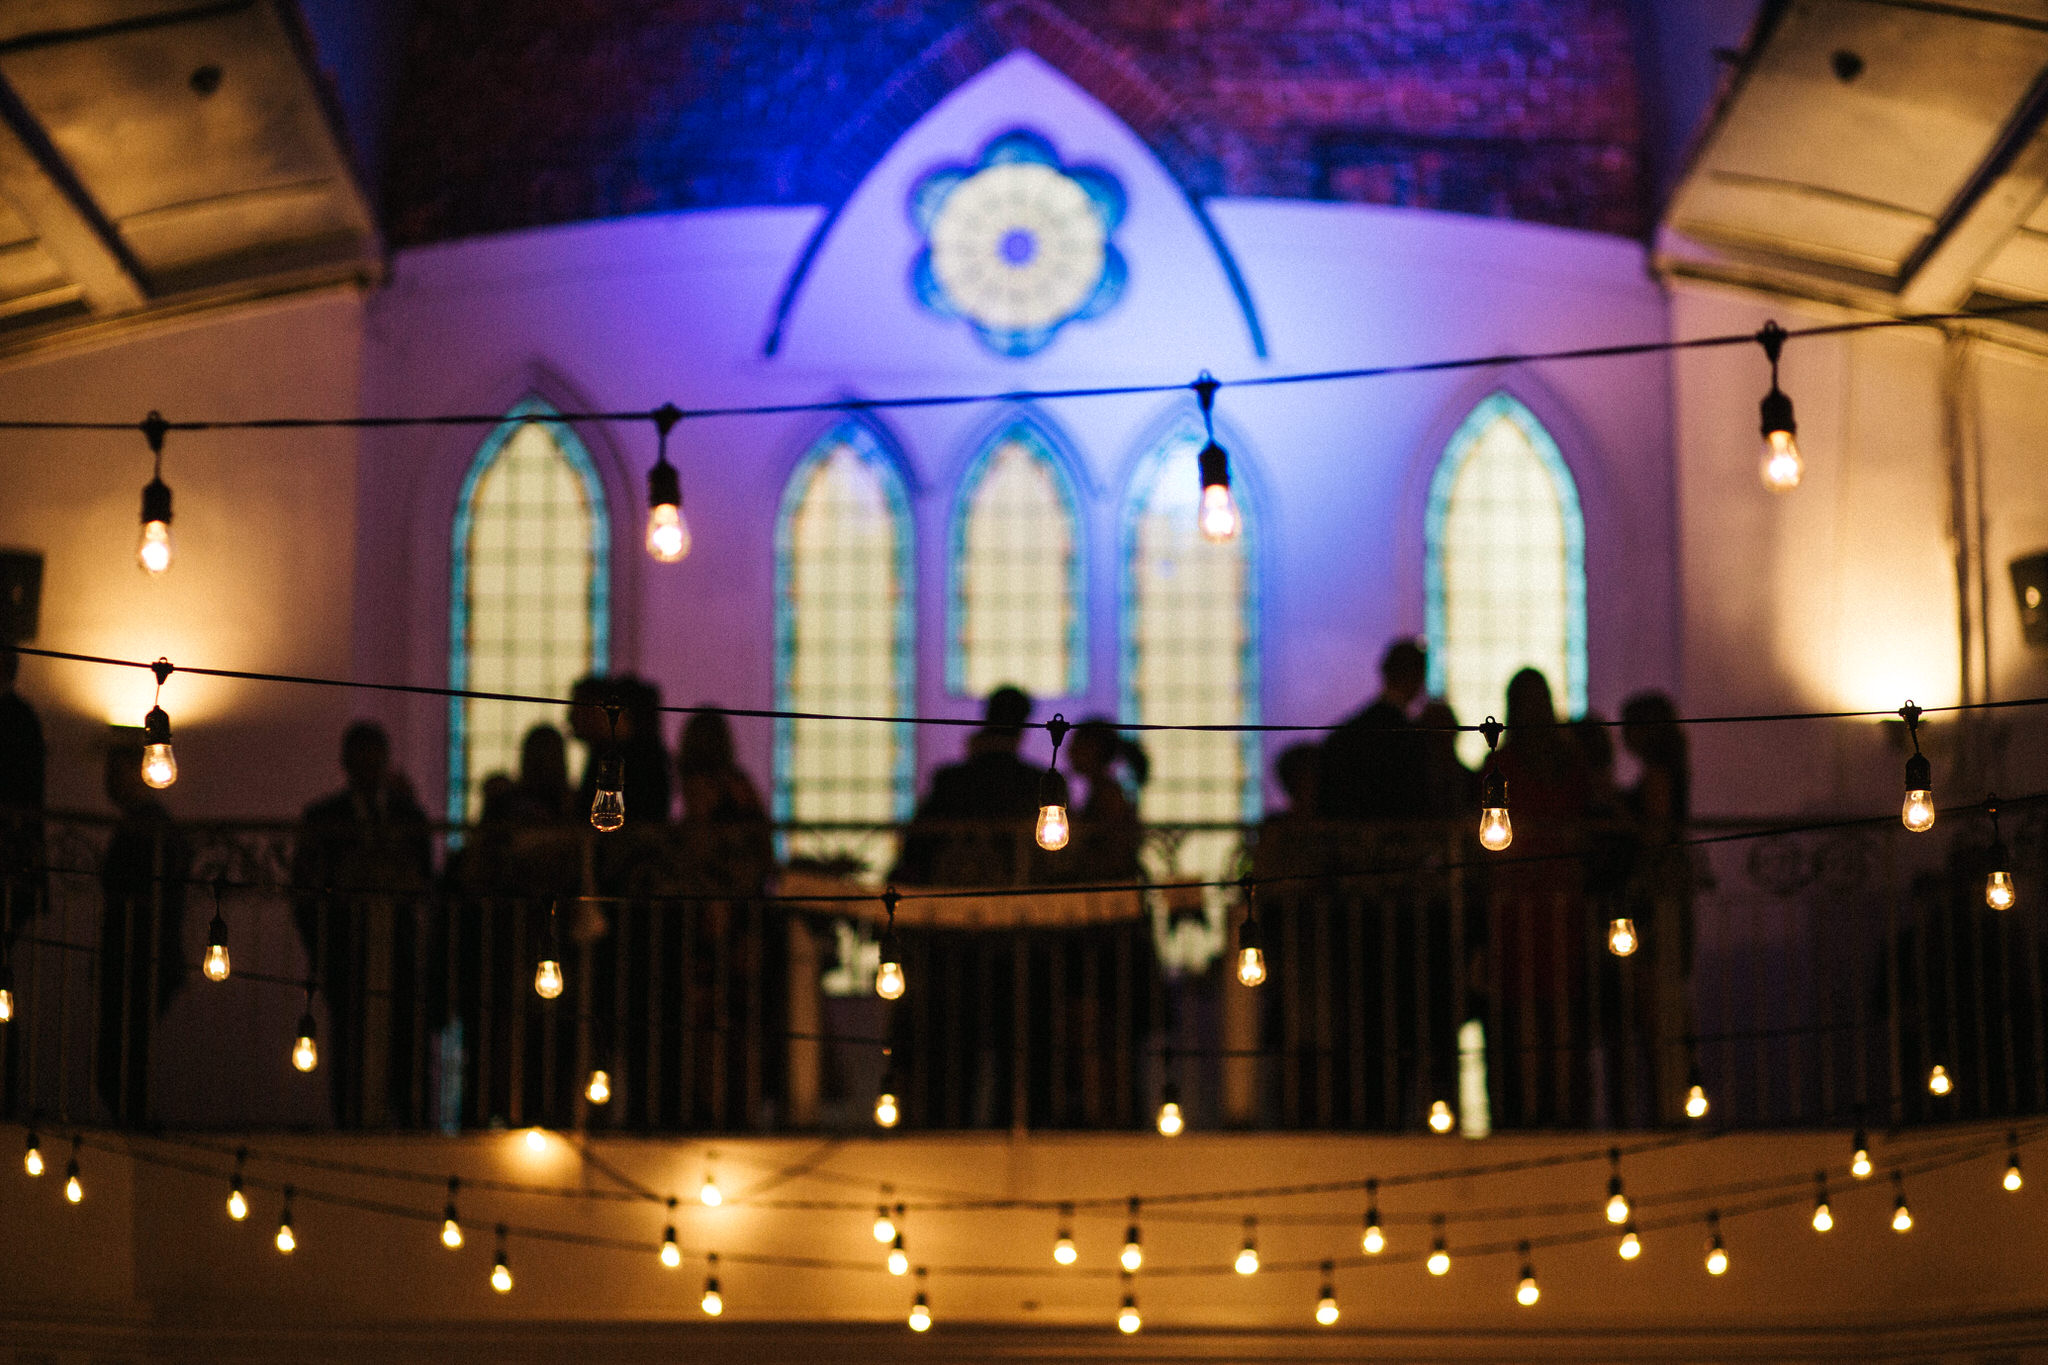 lighting at berkeley church, guest photos, berkeley church wedding, bridal portraits, toronto wedding photographer, berkeley field house